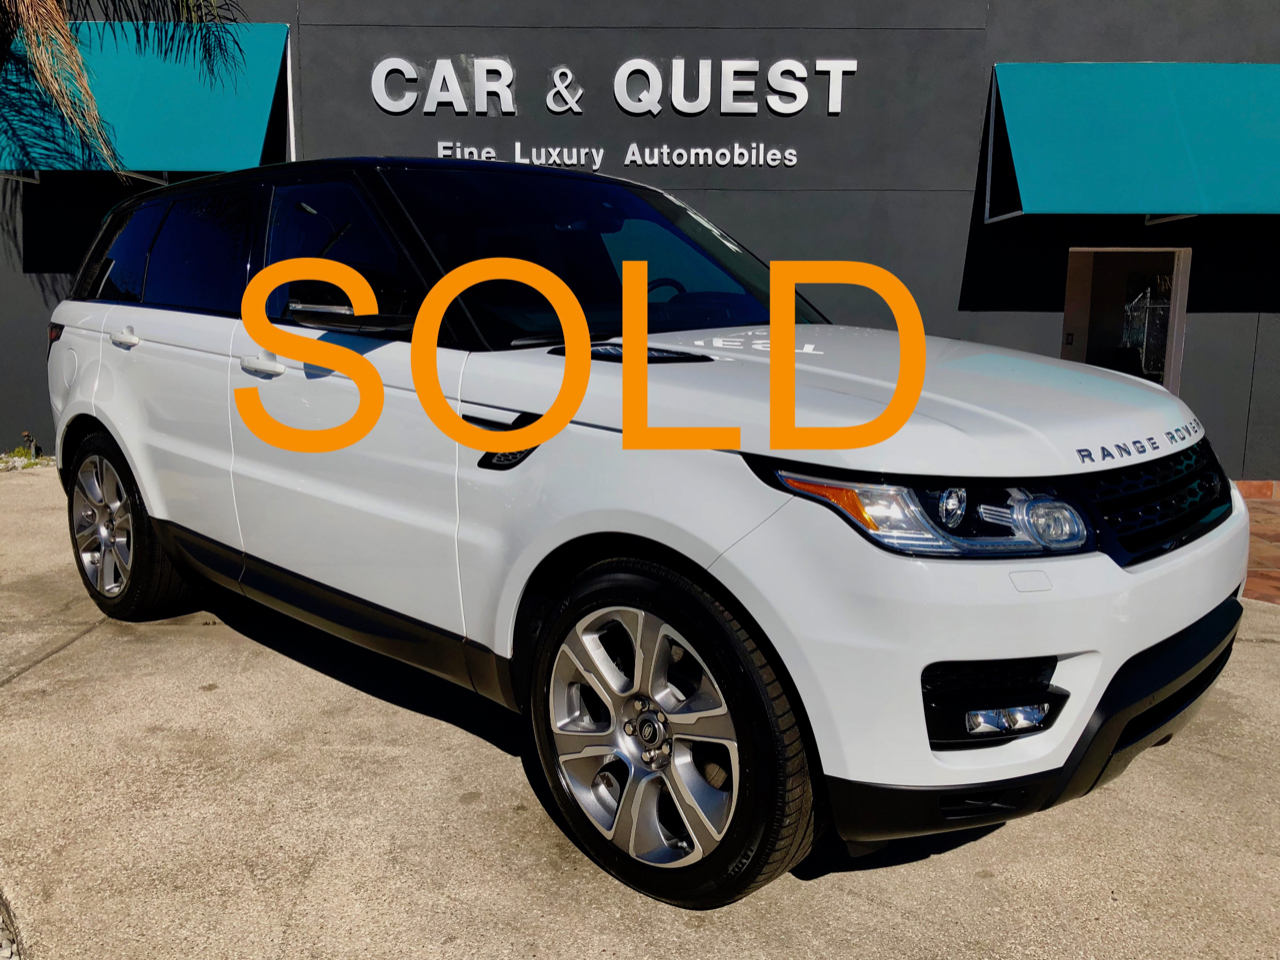 2015 Land Rover Range Rover Sport HSE Dynamic